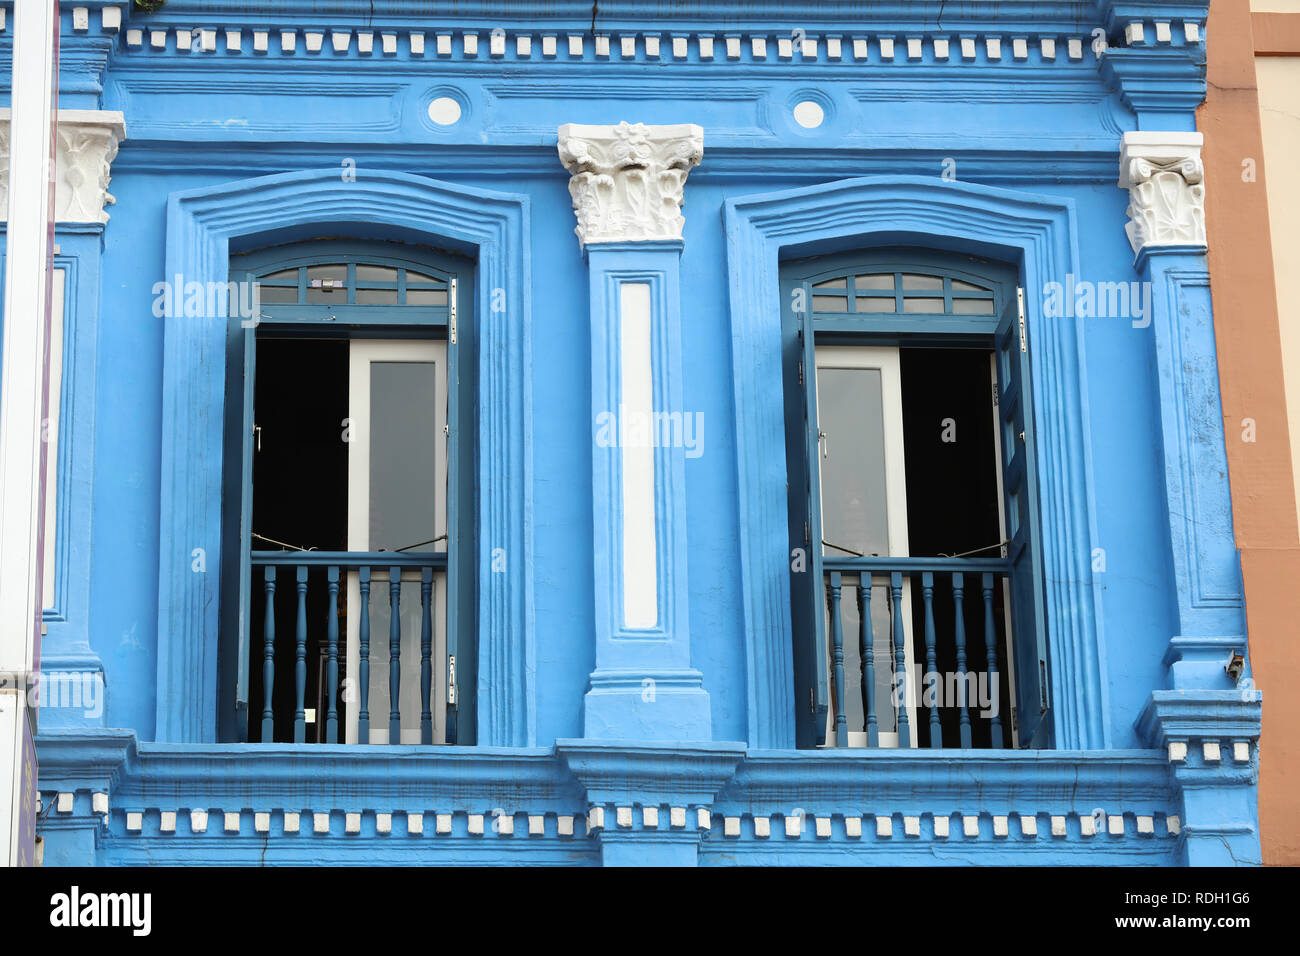 Colourful blue painted house in Chinatown Singapore, one of the many older style traditional buildings in the city, attracting tourists and visitors. Stock Photo